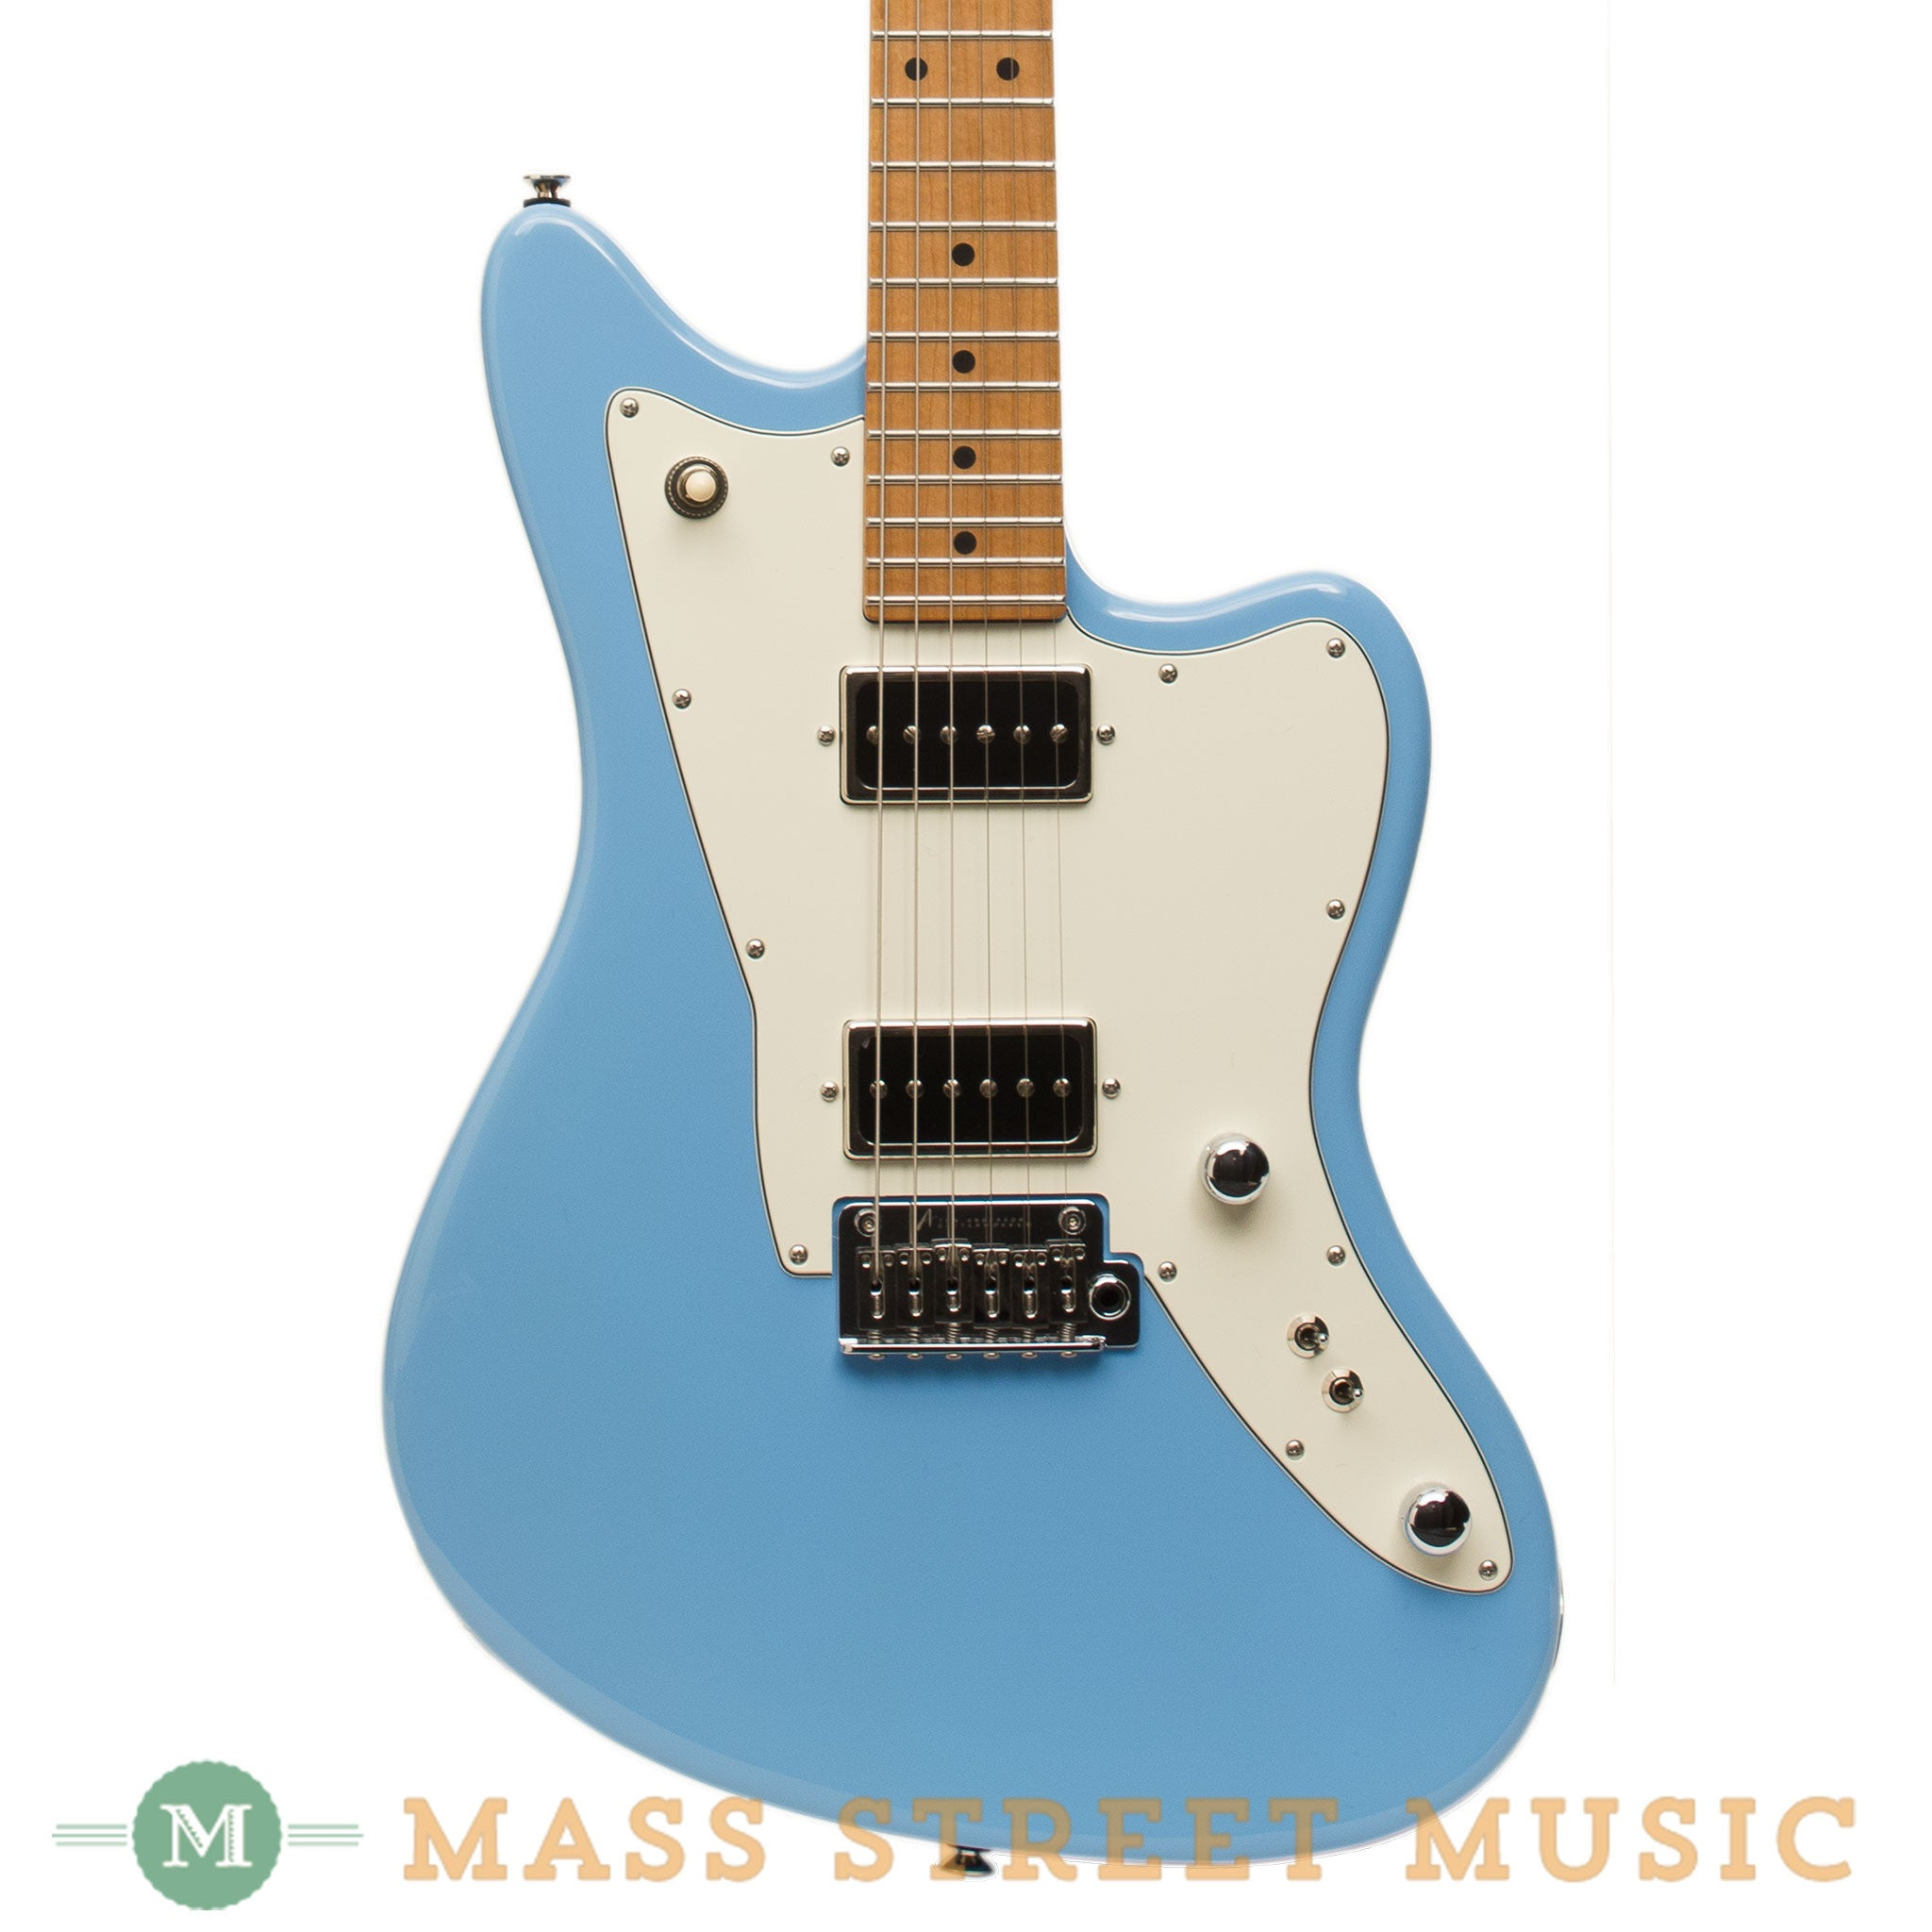 Baby Blue Electric Guitars Wiring Diagram And Electrical Schematic Tom Anderson Raven Classic Shorty Rh Massstreetmusic Com Light Fender Guitar